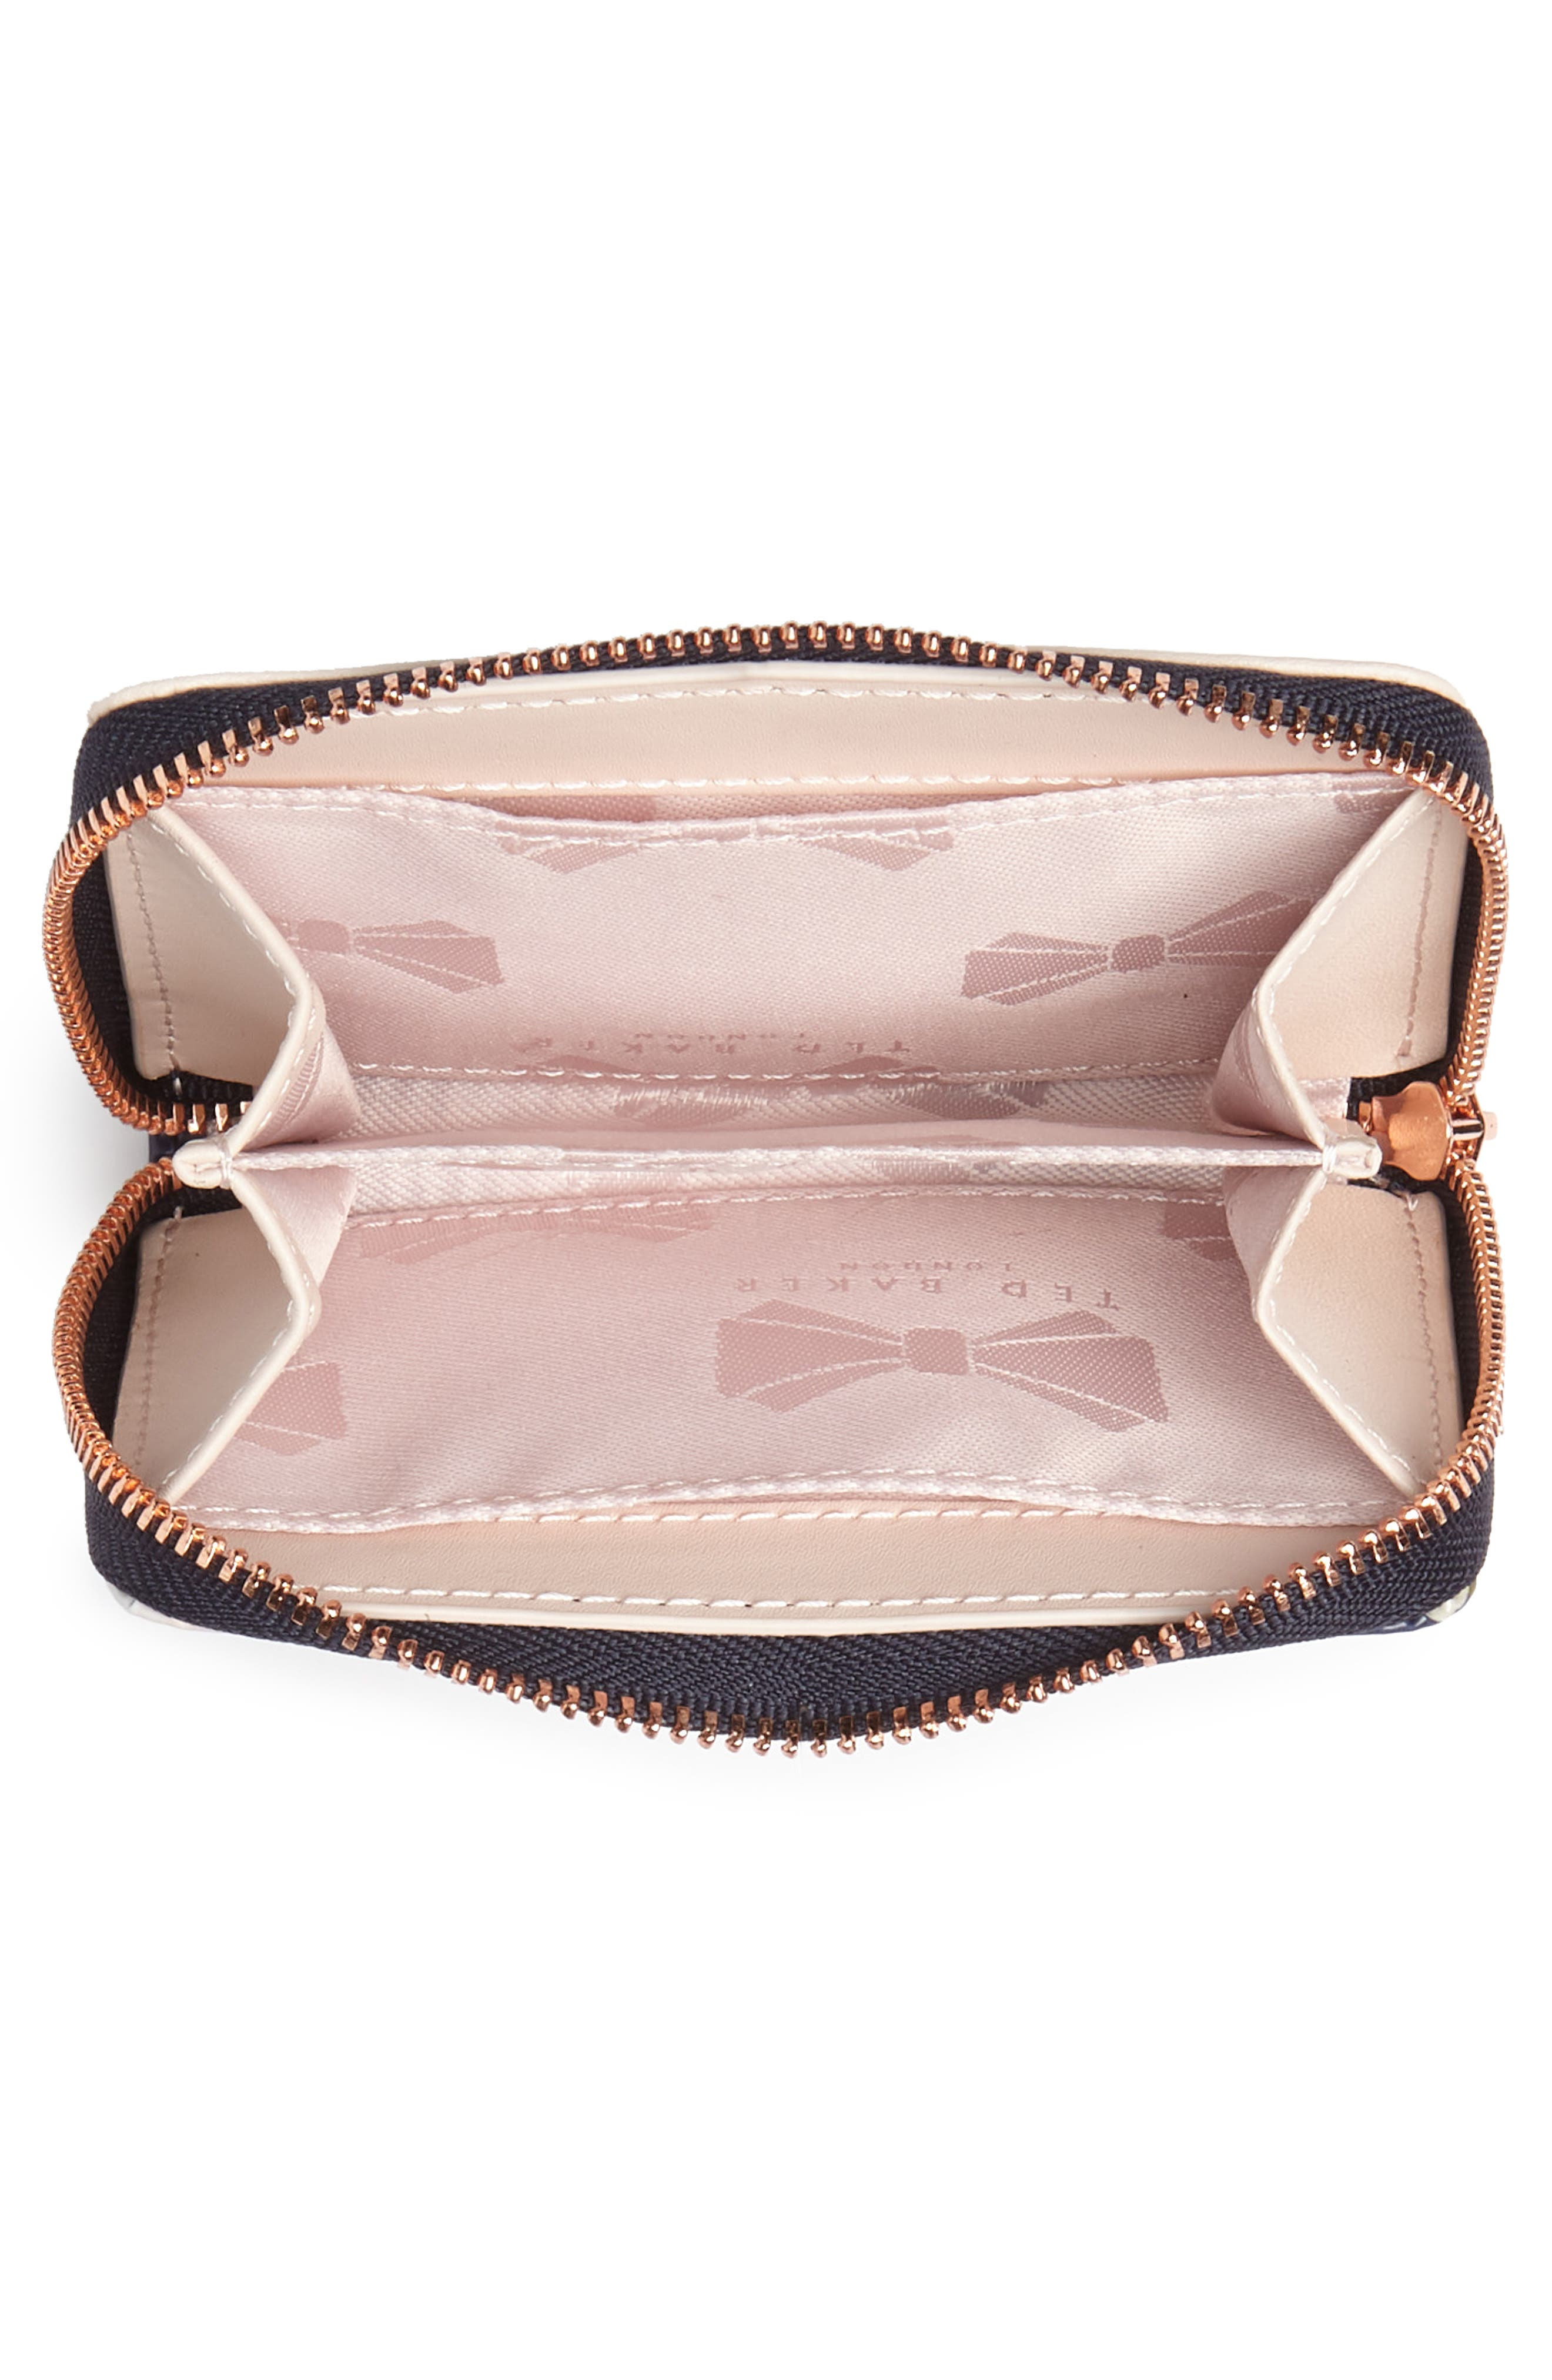 Vallie Chatsworth Bloom Leather Zip Coin Purse,                             Alternate thumbnail 4, color,